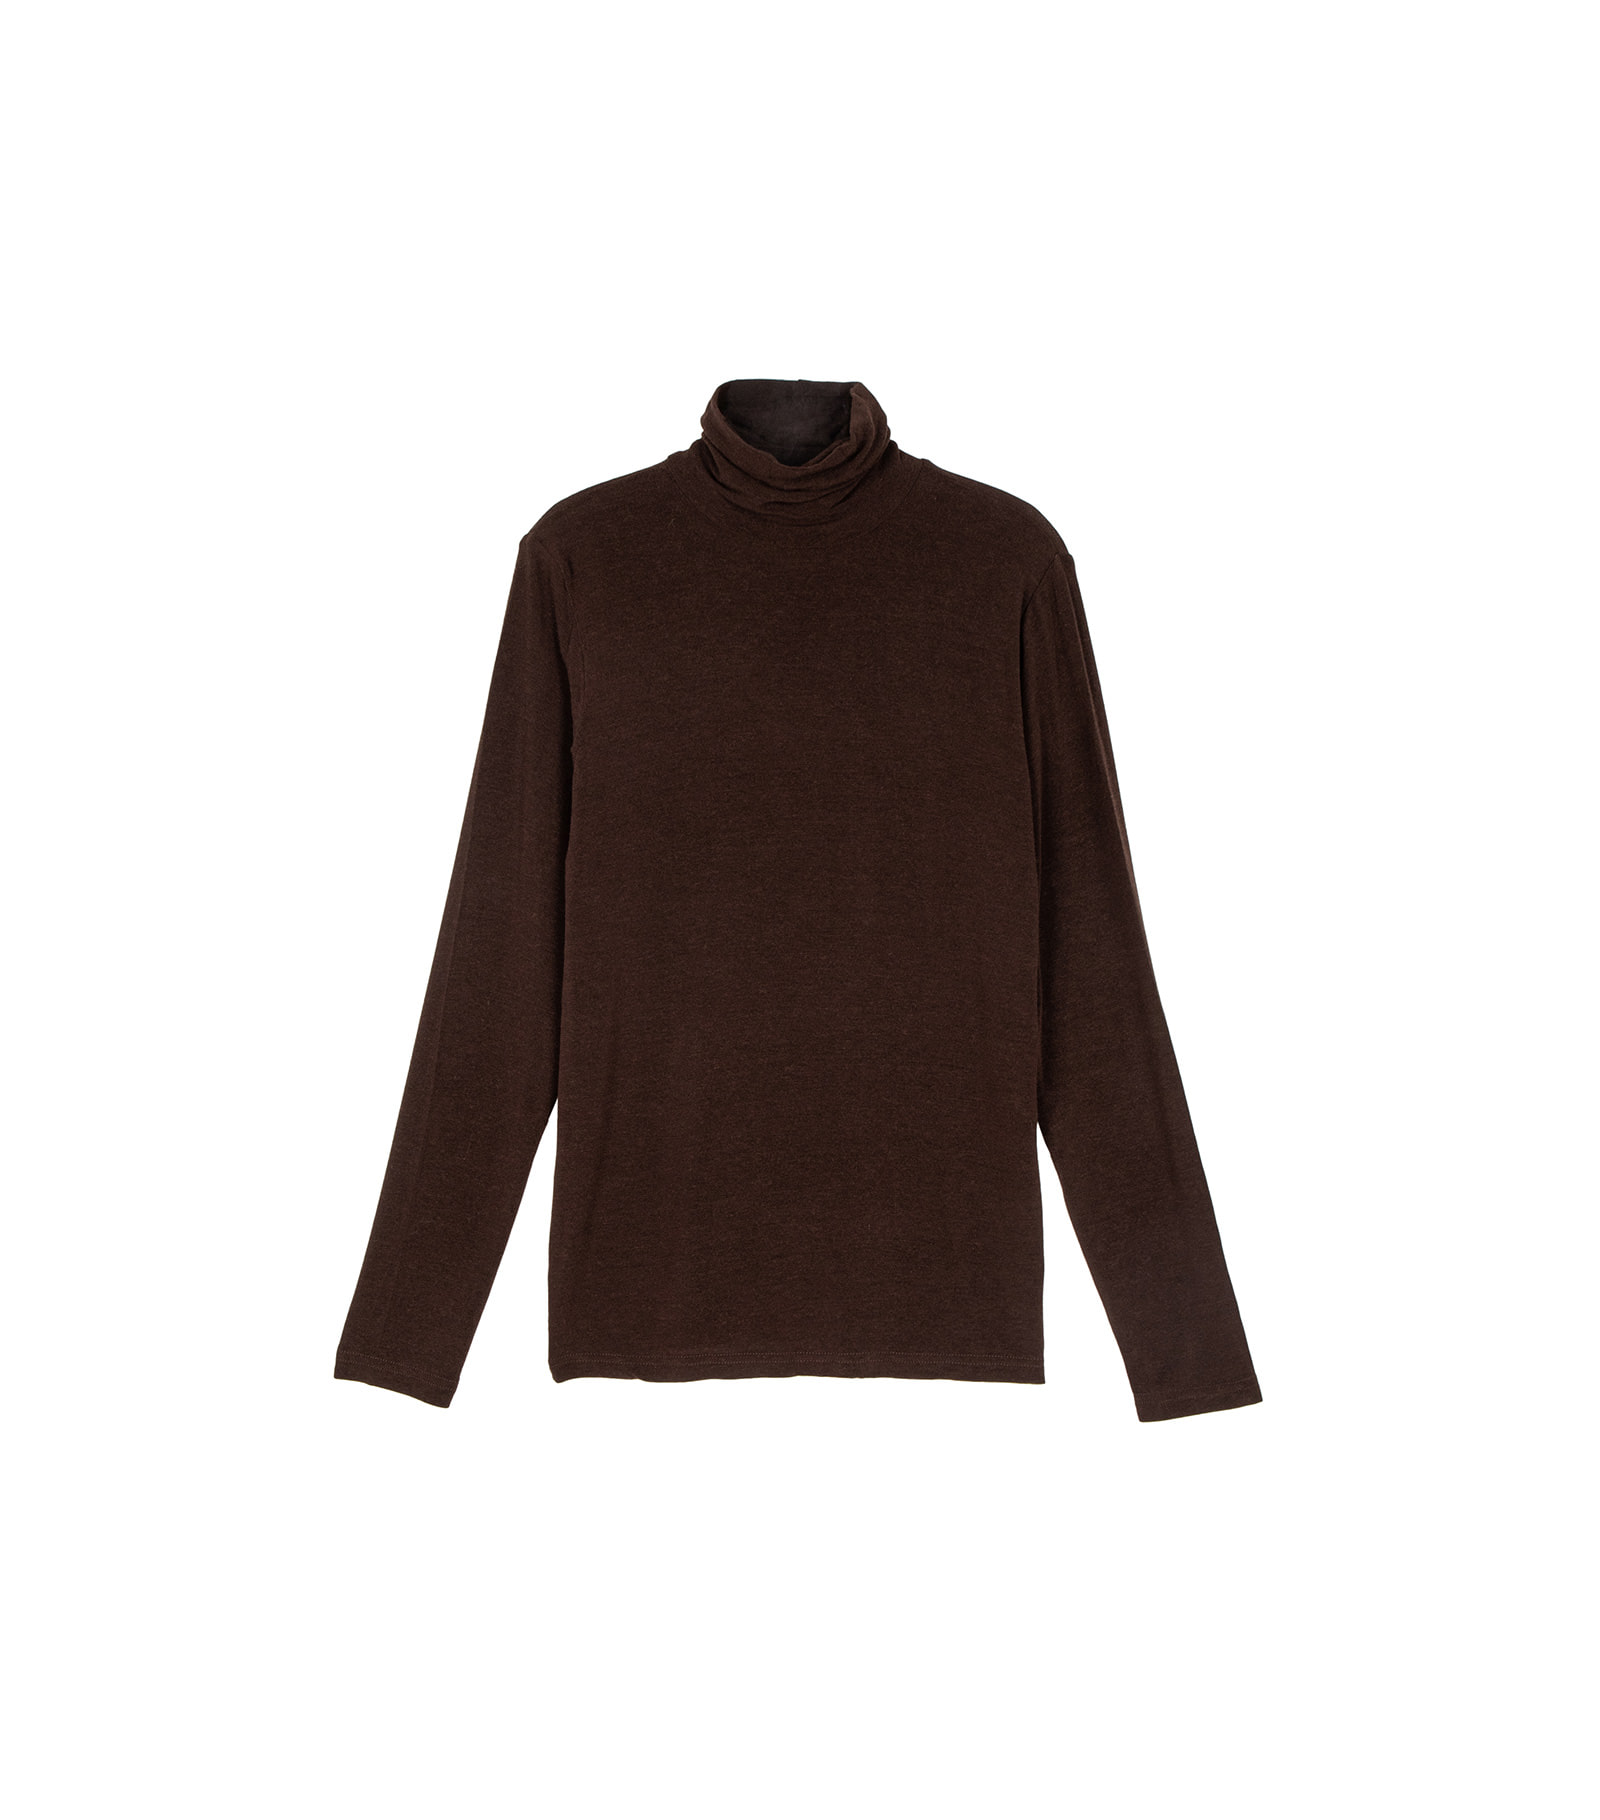 Belle slim turtleneck top